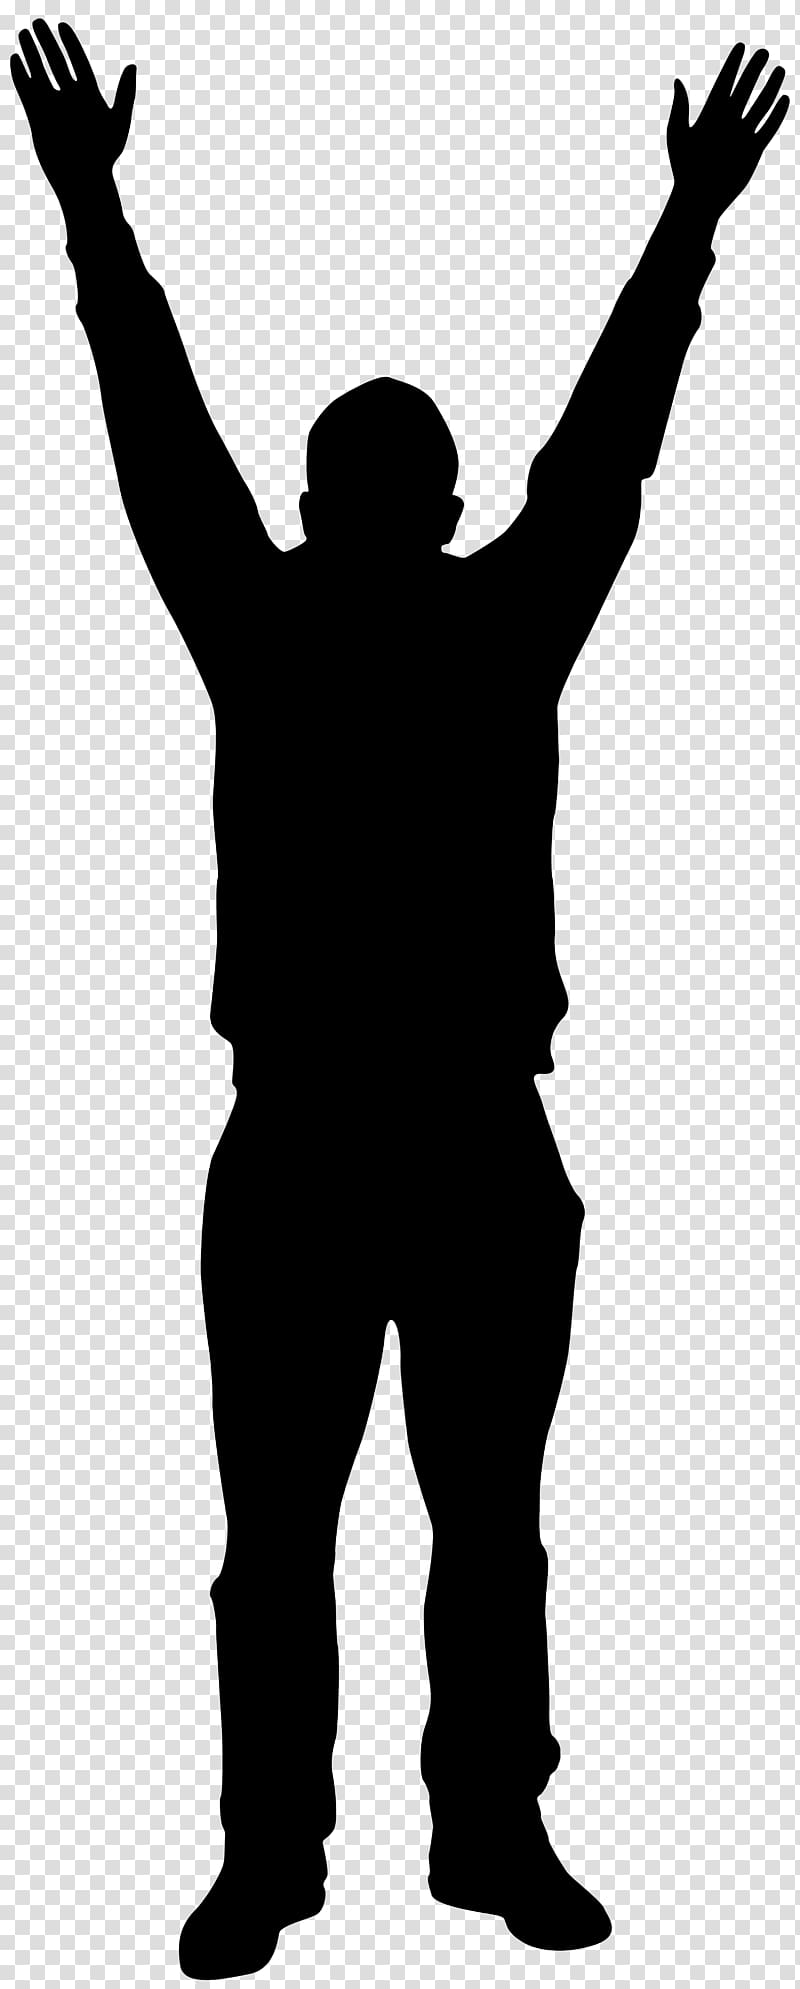 Silhouette Man , Man with Hands up Silhouette transparent.